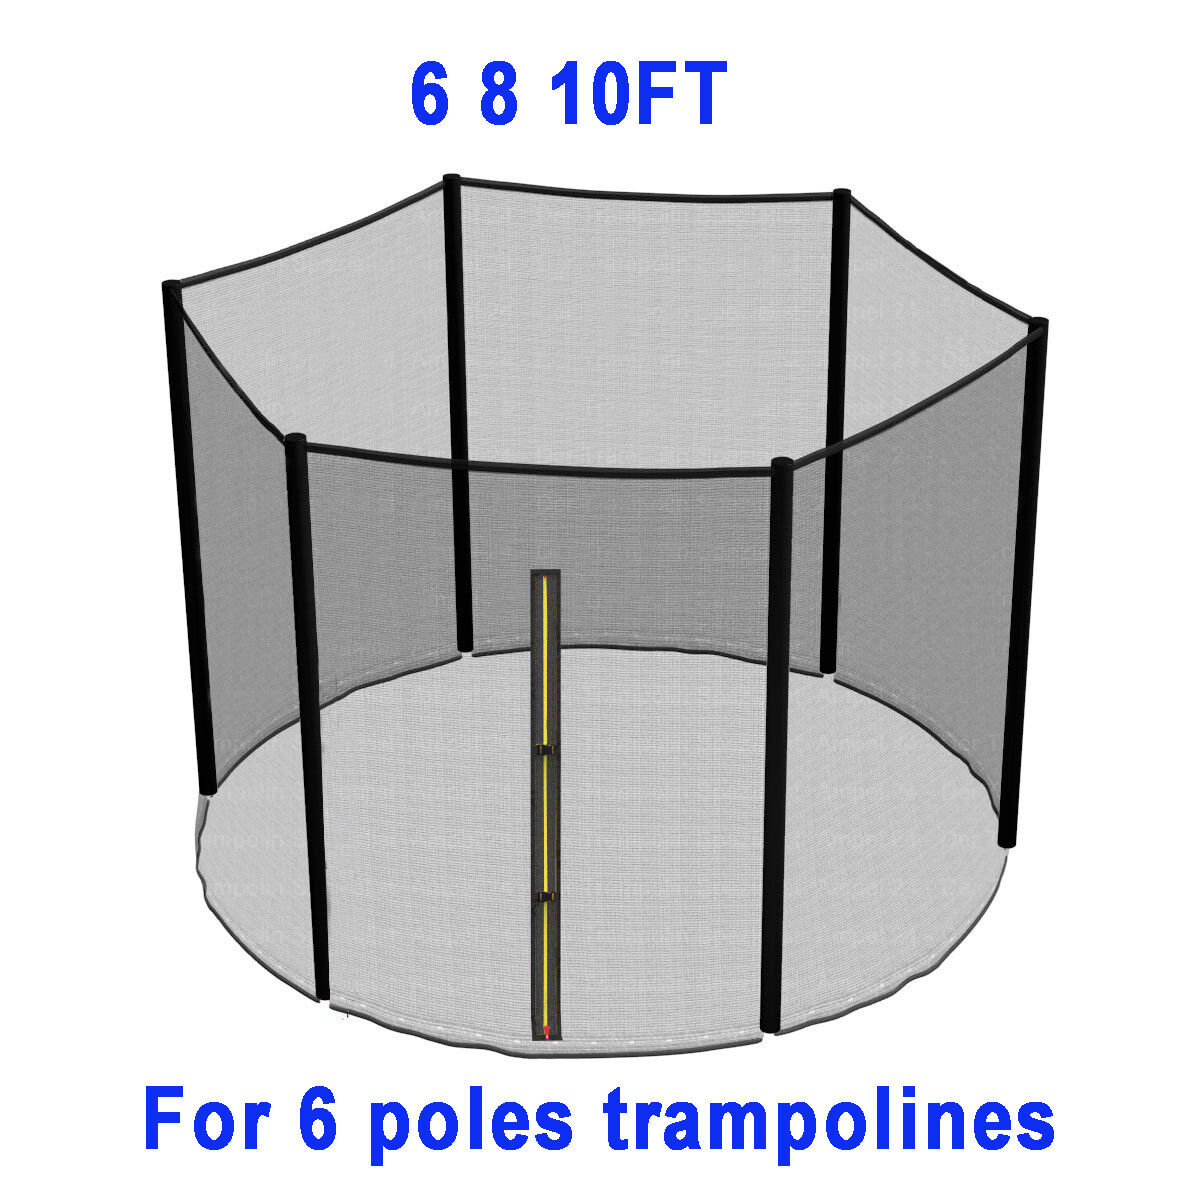 TRAMPOLINE REPLACEMENT PAD PADDING SAFETY NET COVER LADDER SKIRT 6 8 10 12 14FT - 3